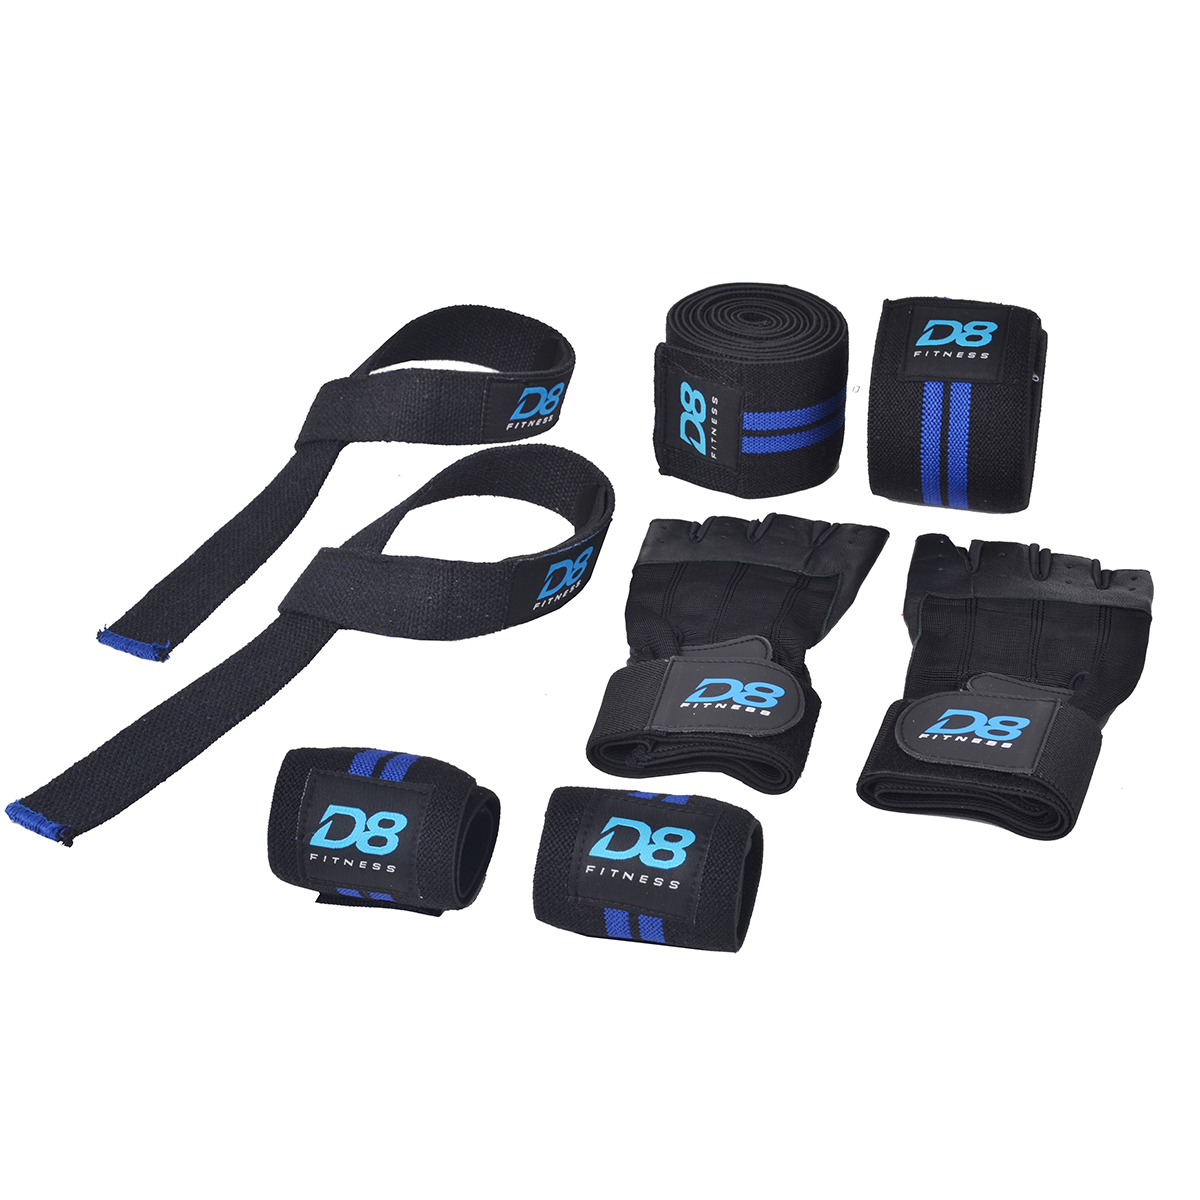 D8 Fitness Support Pack